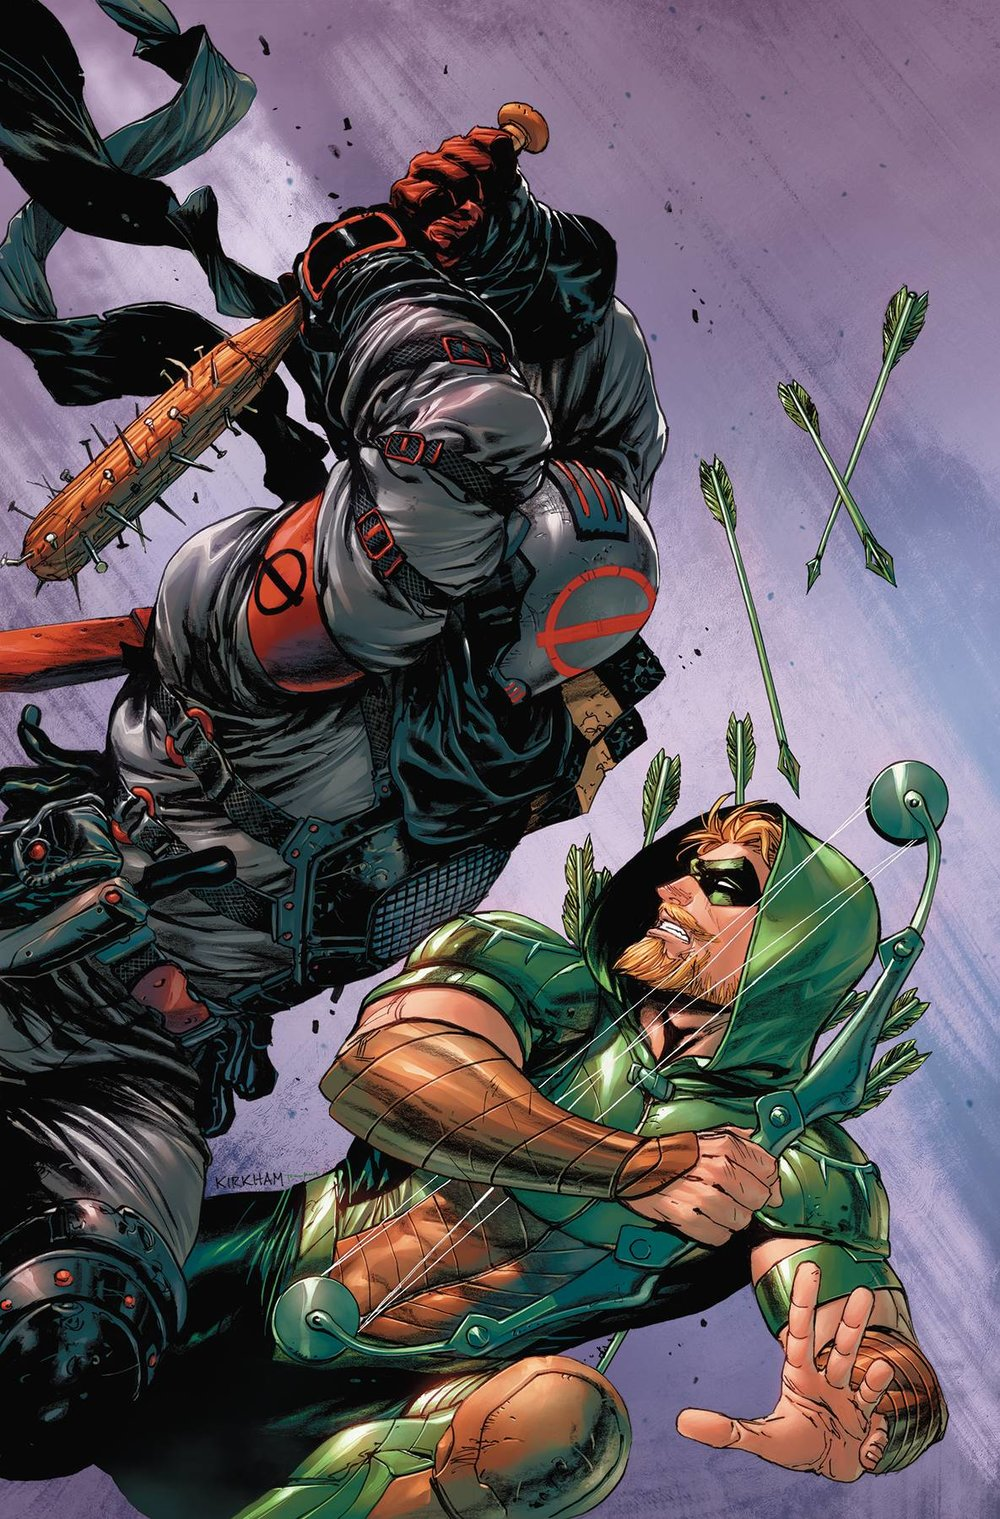 GREEN ARROW #39